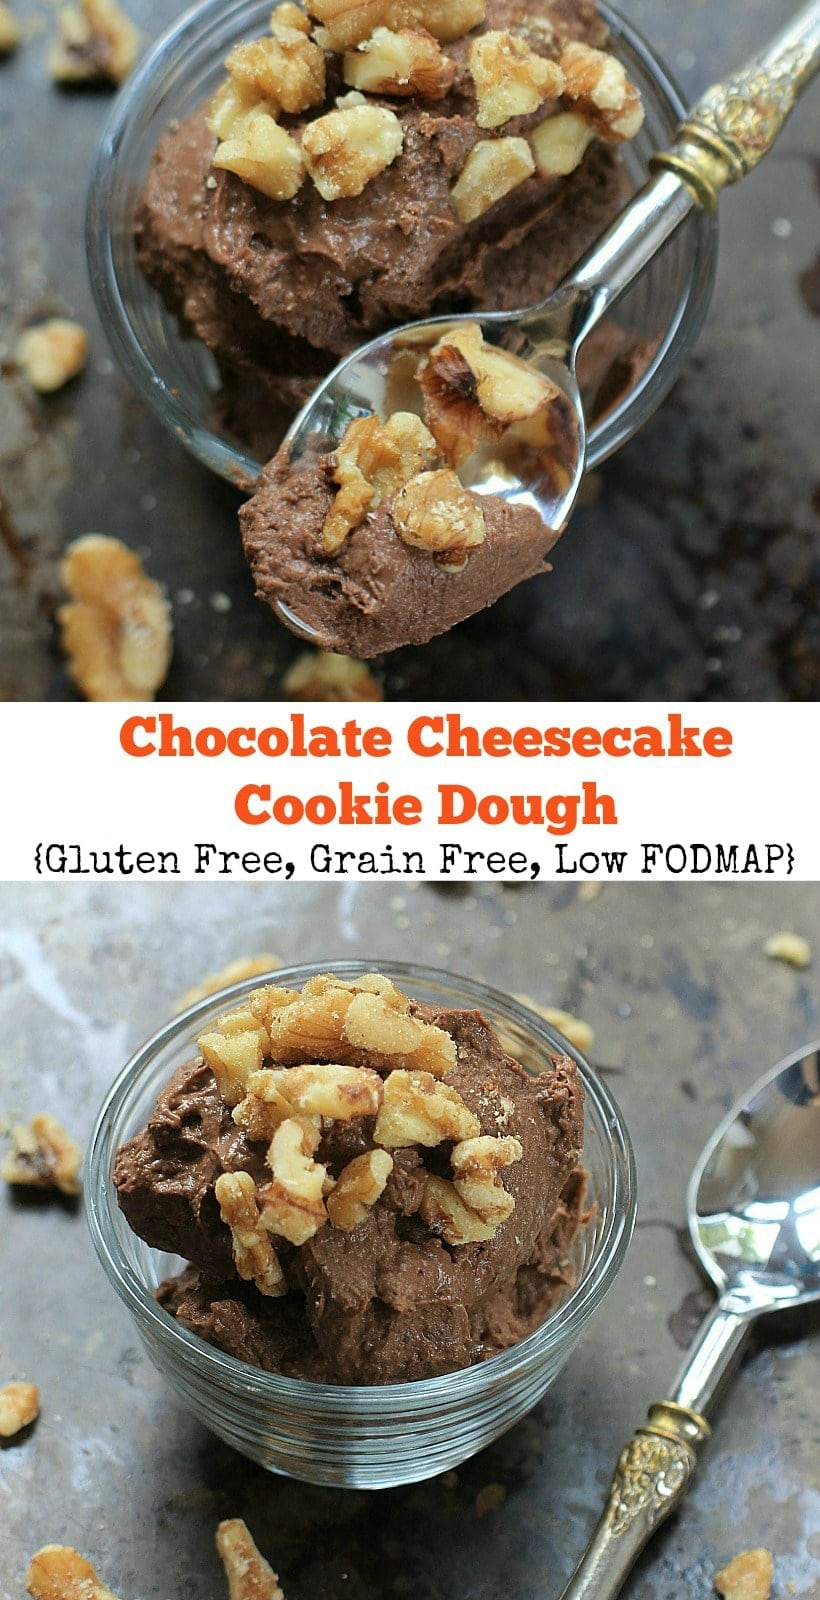 A healthy treat! Chocolate Cheesecake Cookie Dough | Made with only 5 ingredients, this no-bake edible cookie dough will satisfy ALL your chocolate cravings! Get the grain free, low FODMAP option recipe + more healthy gluten free recipes at The Spicy RD